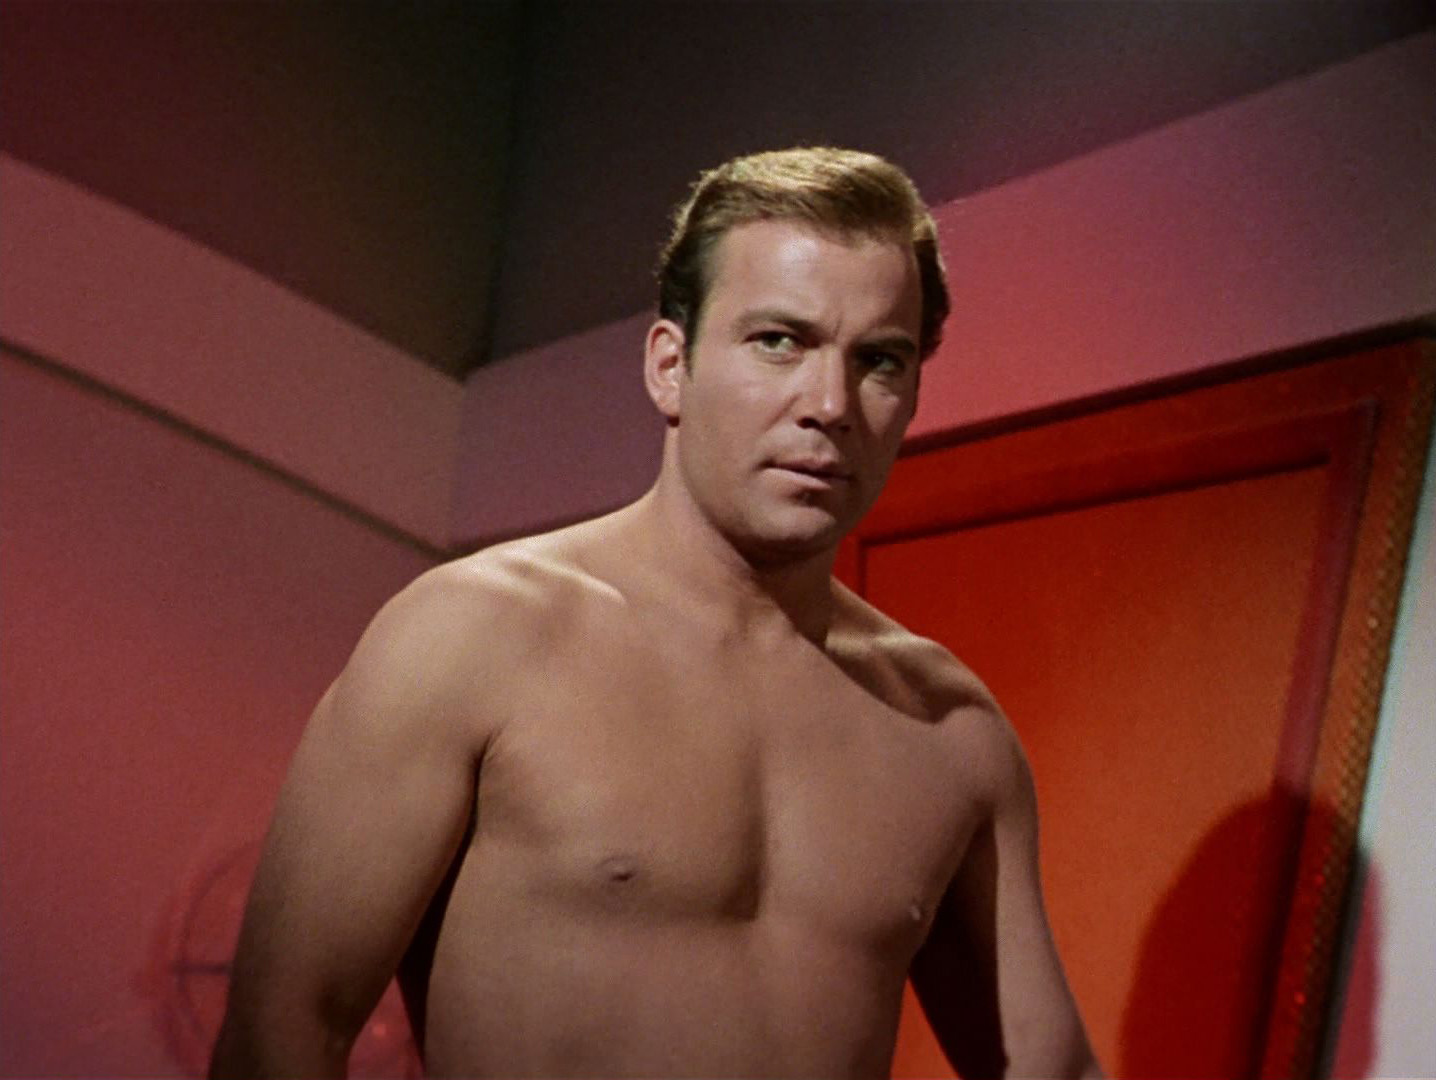 Nude pictures of young william shatner — pic 7